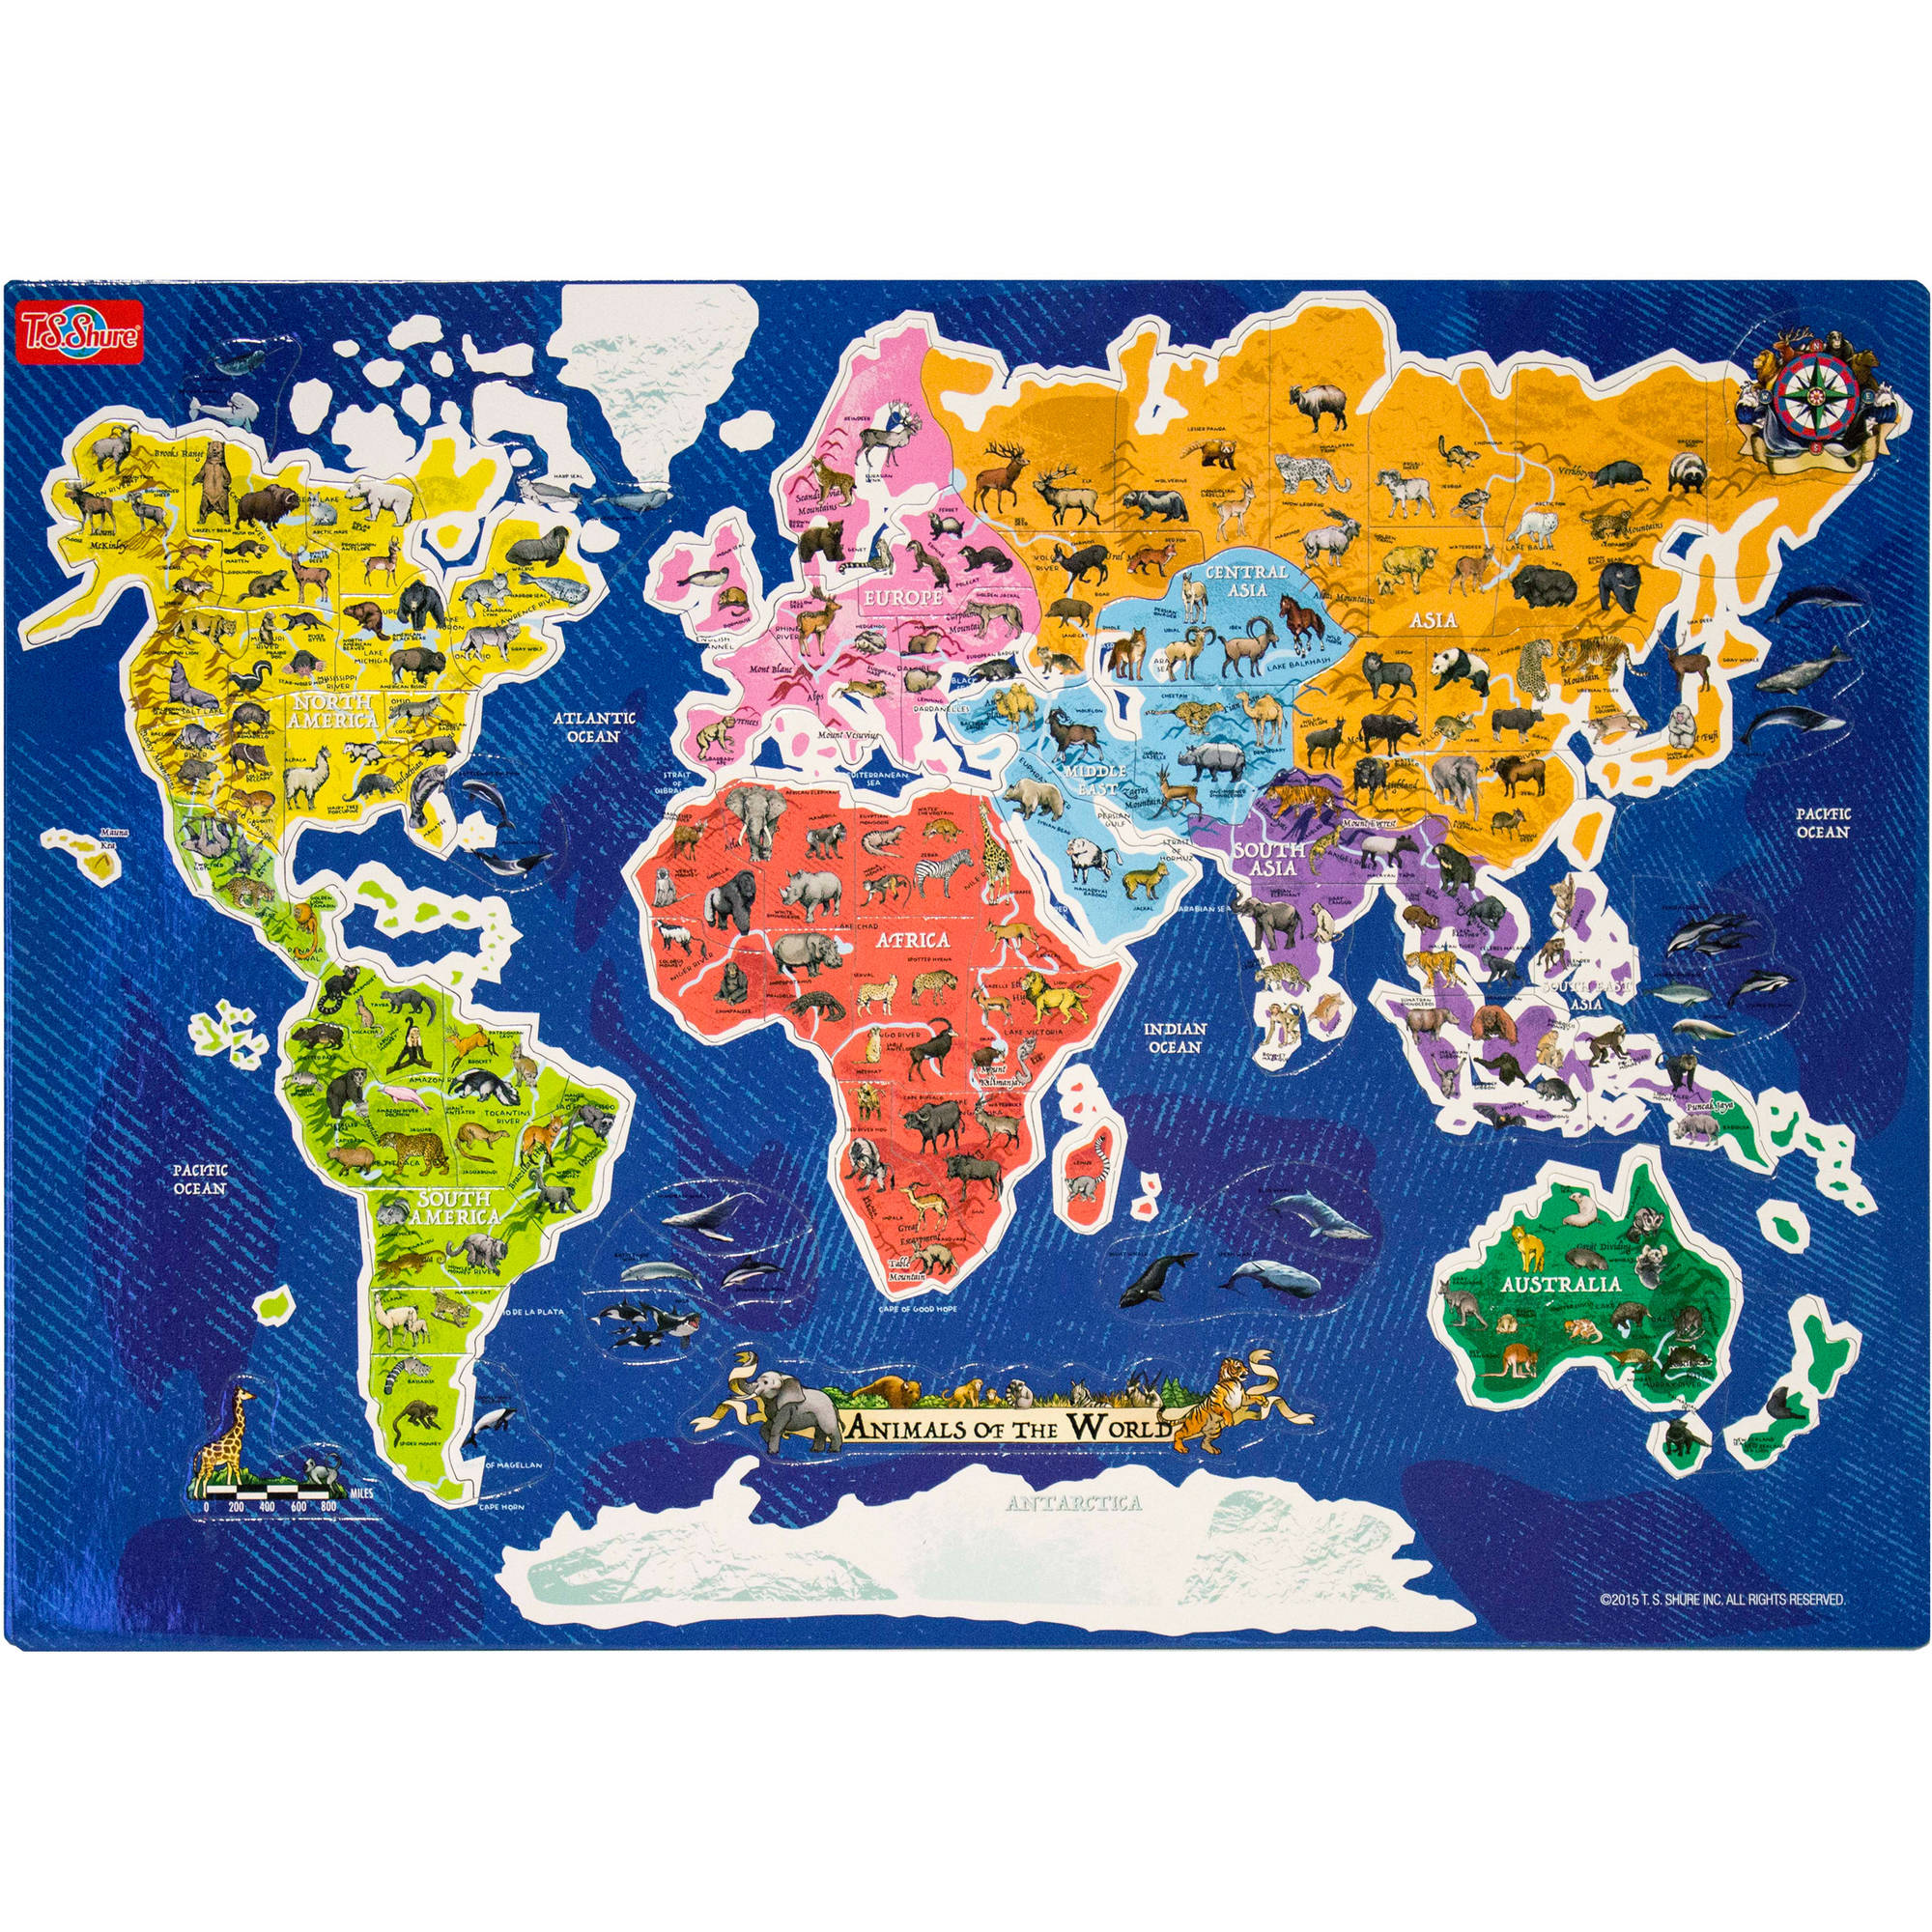 Ts shure animals of the world map magnetic playboard and puzzle ts shure animals of the world map magnetic playboard and puzzle walmart gumiabroncs Images